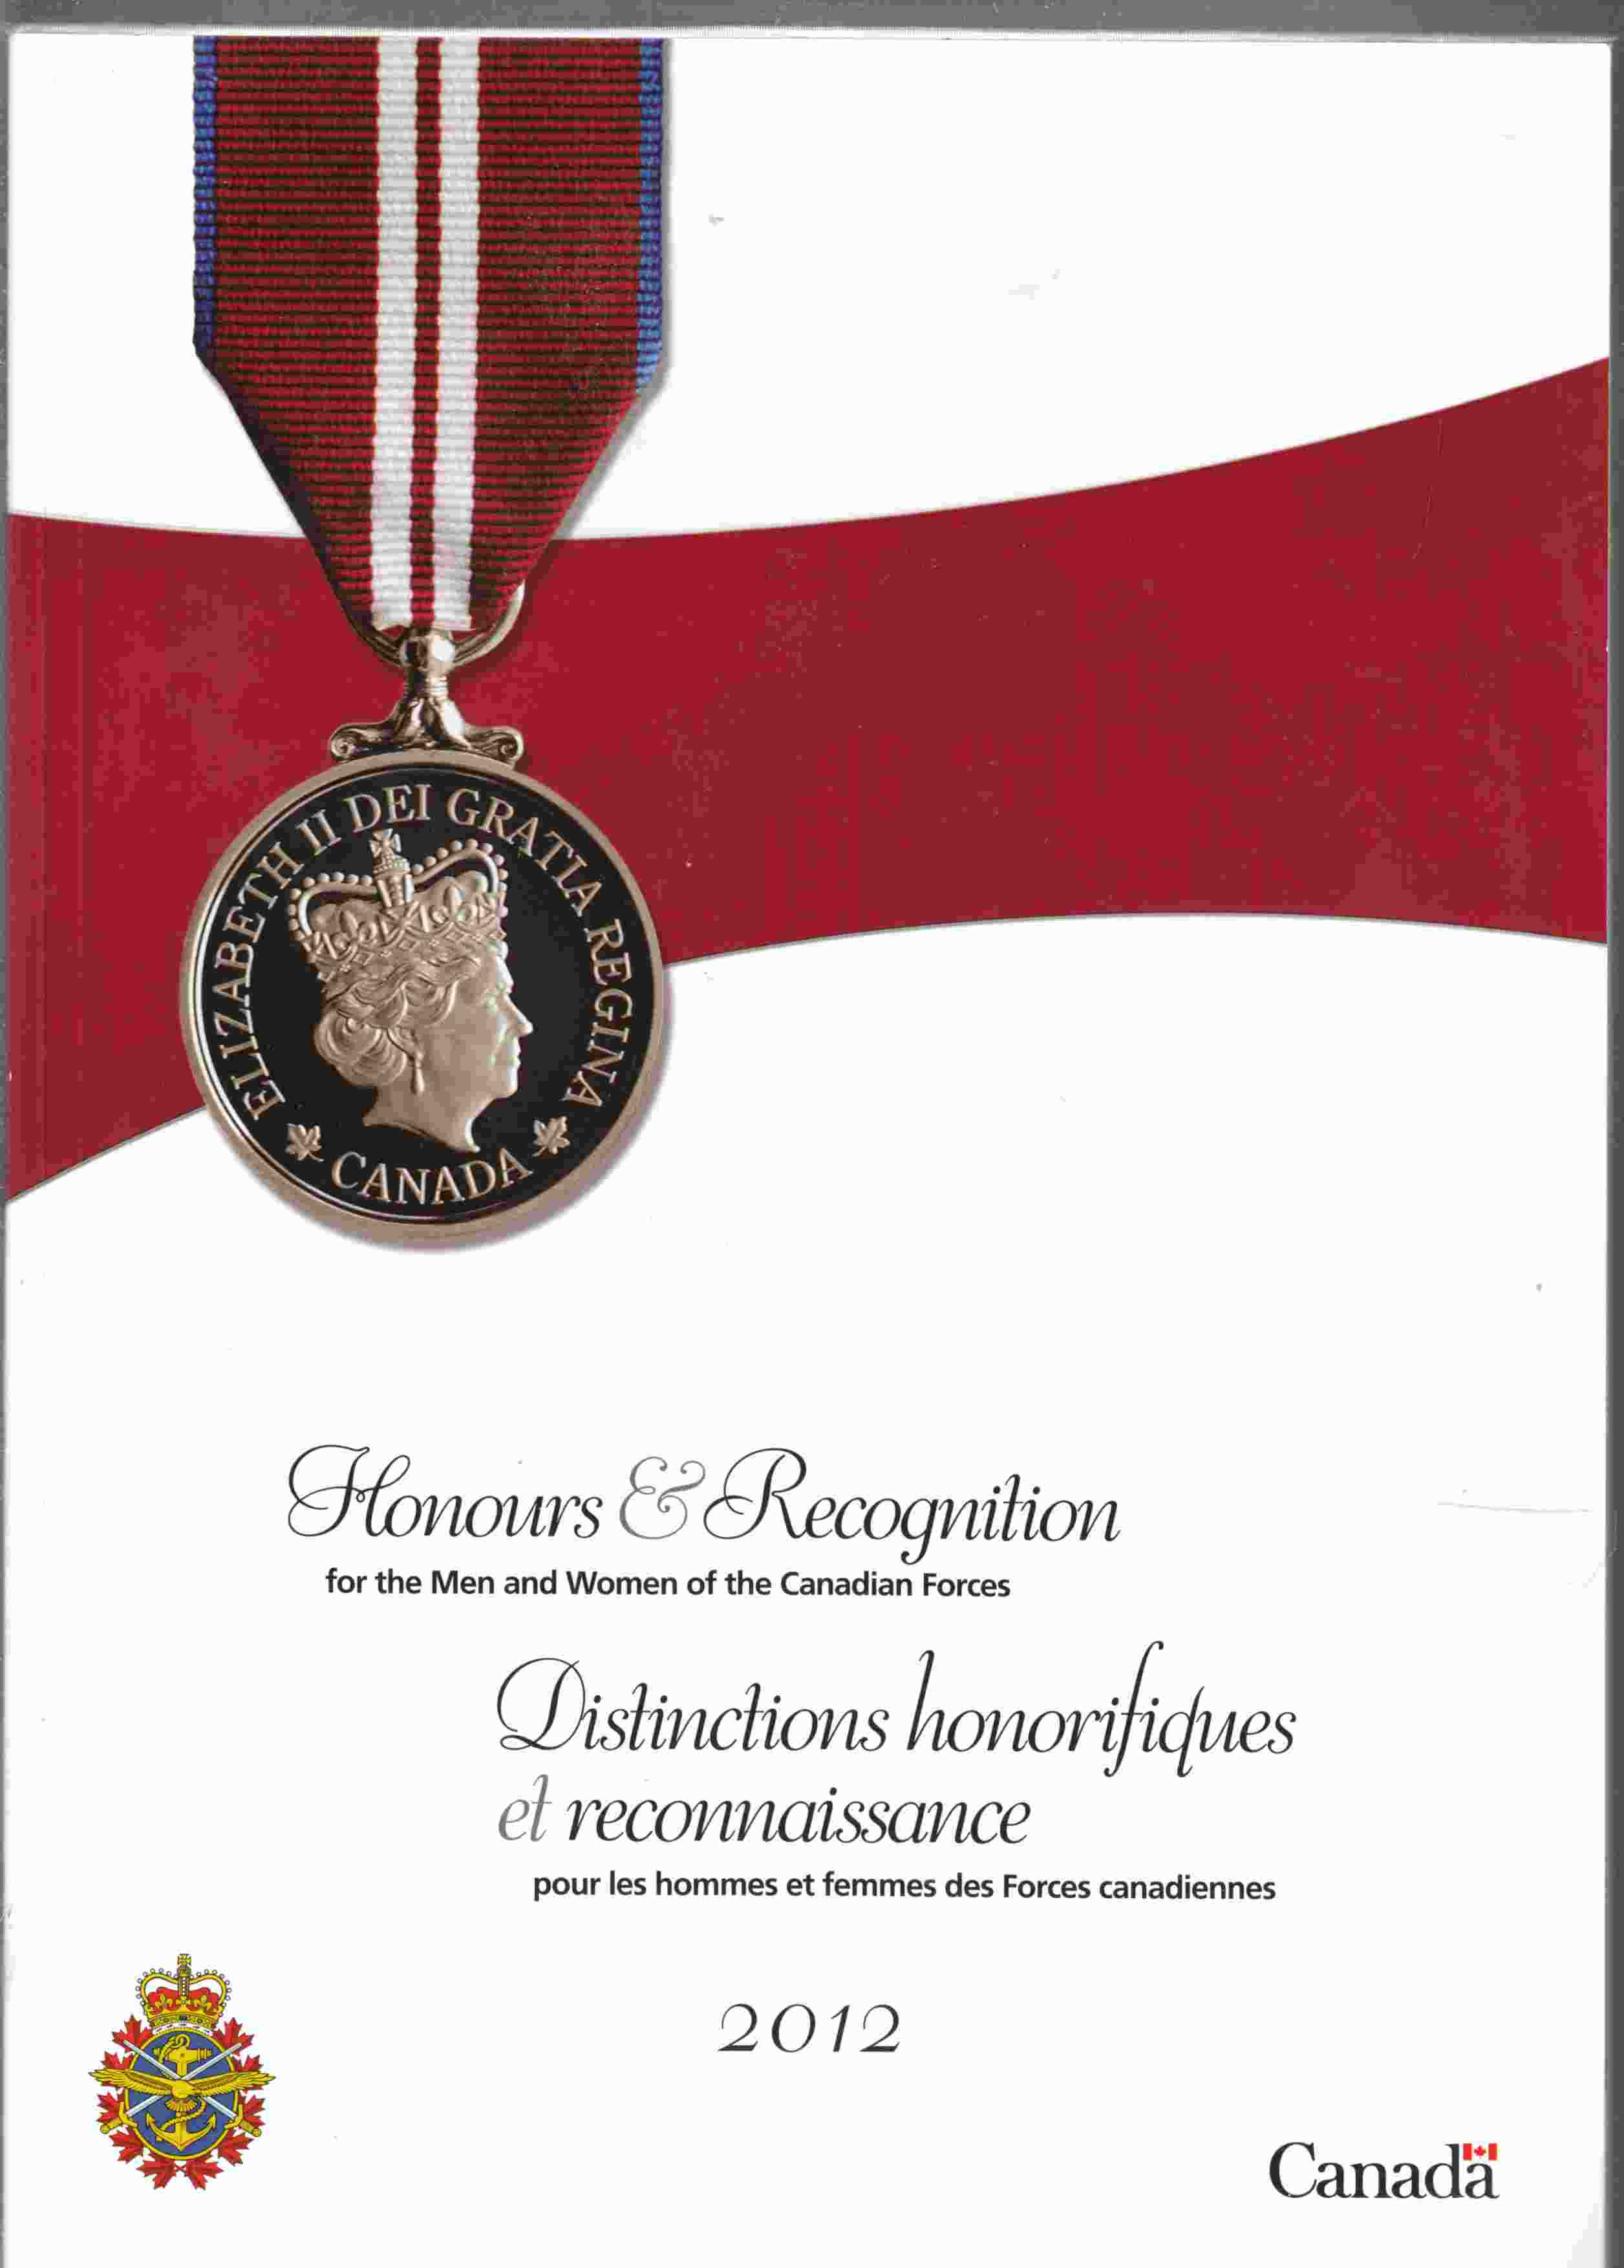 Image for Honours & Recognition for the Men and Women of the Canadian Forces 2012 Distinctions Honorifiques Et Reconnaissance Pour Les Hommes Et Femmes Des Forces Canadiennes